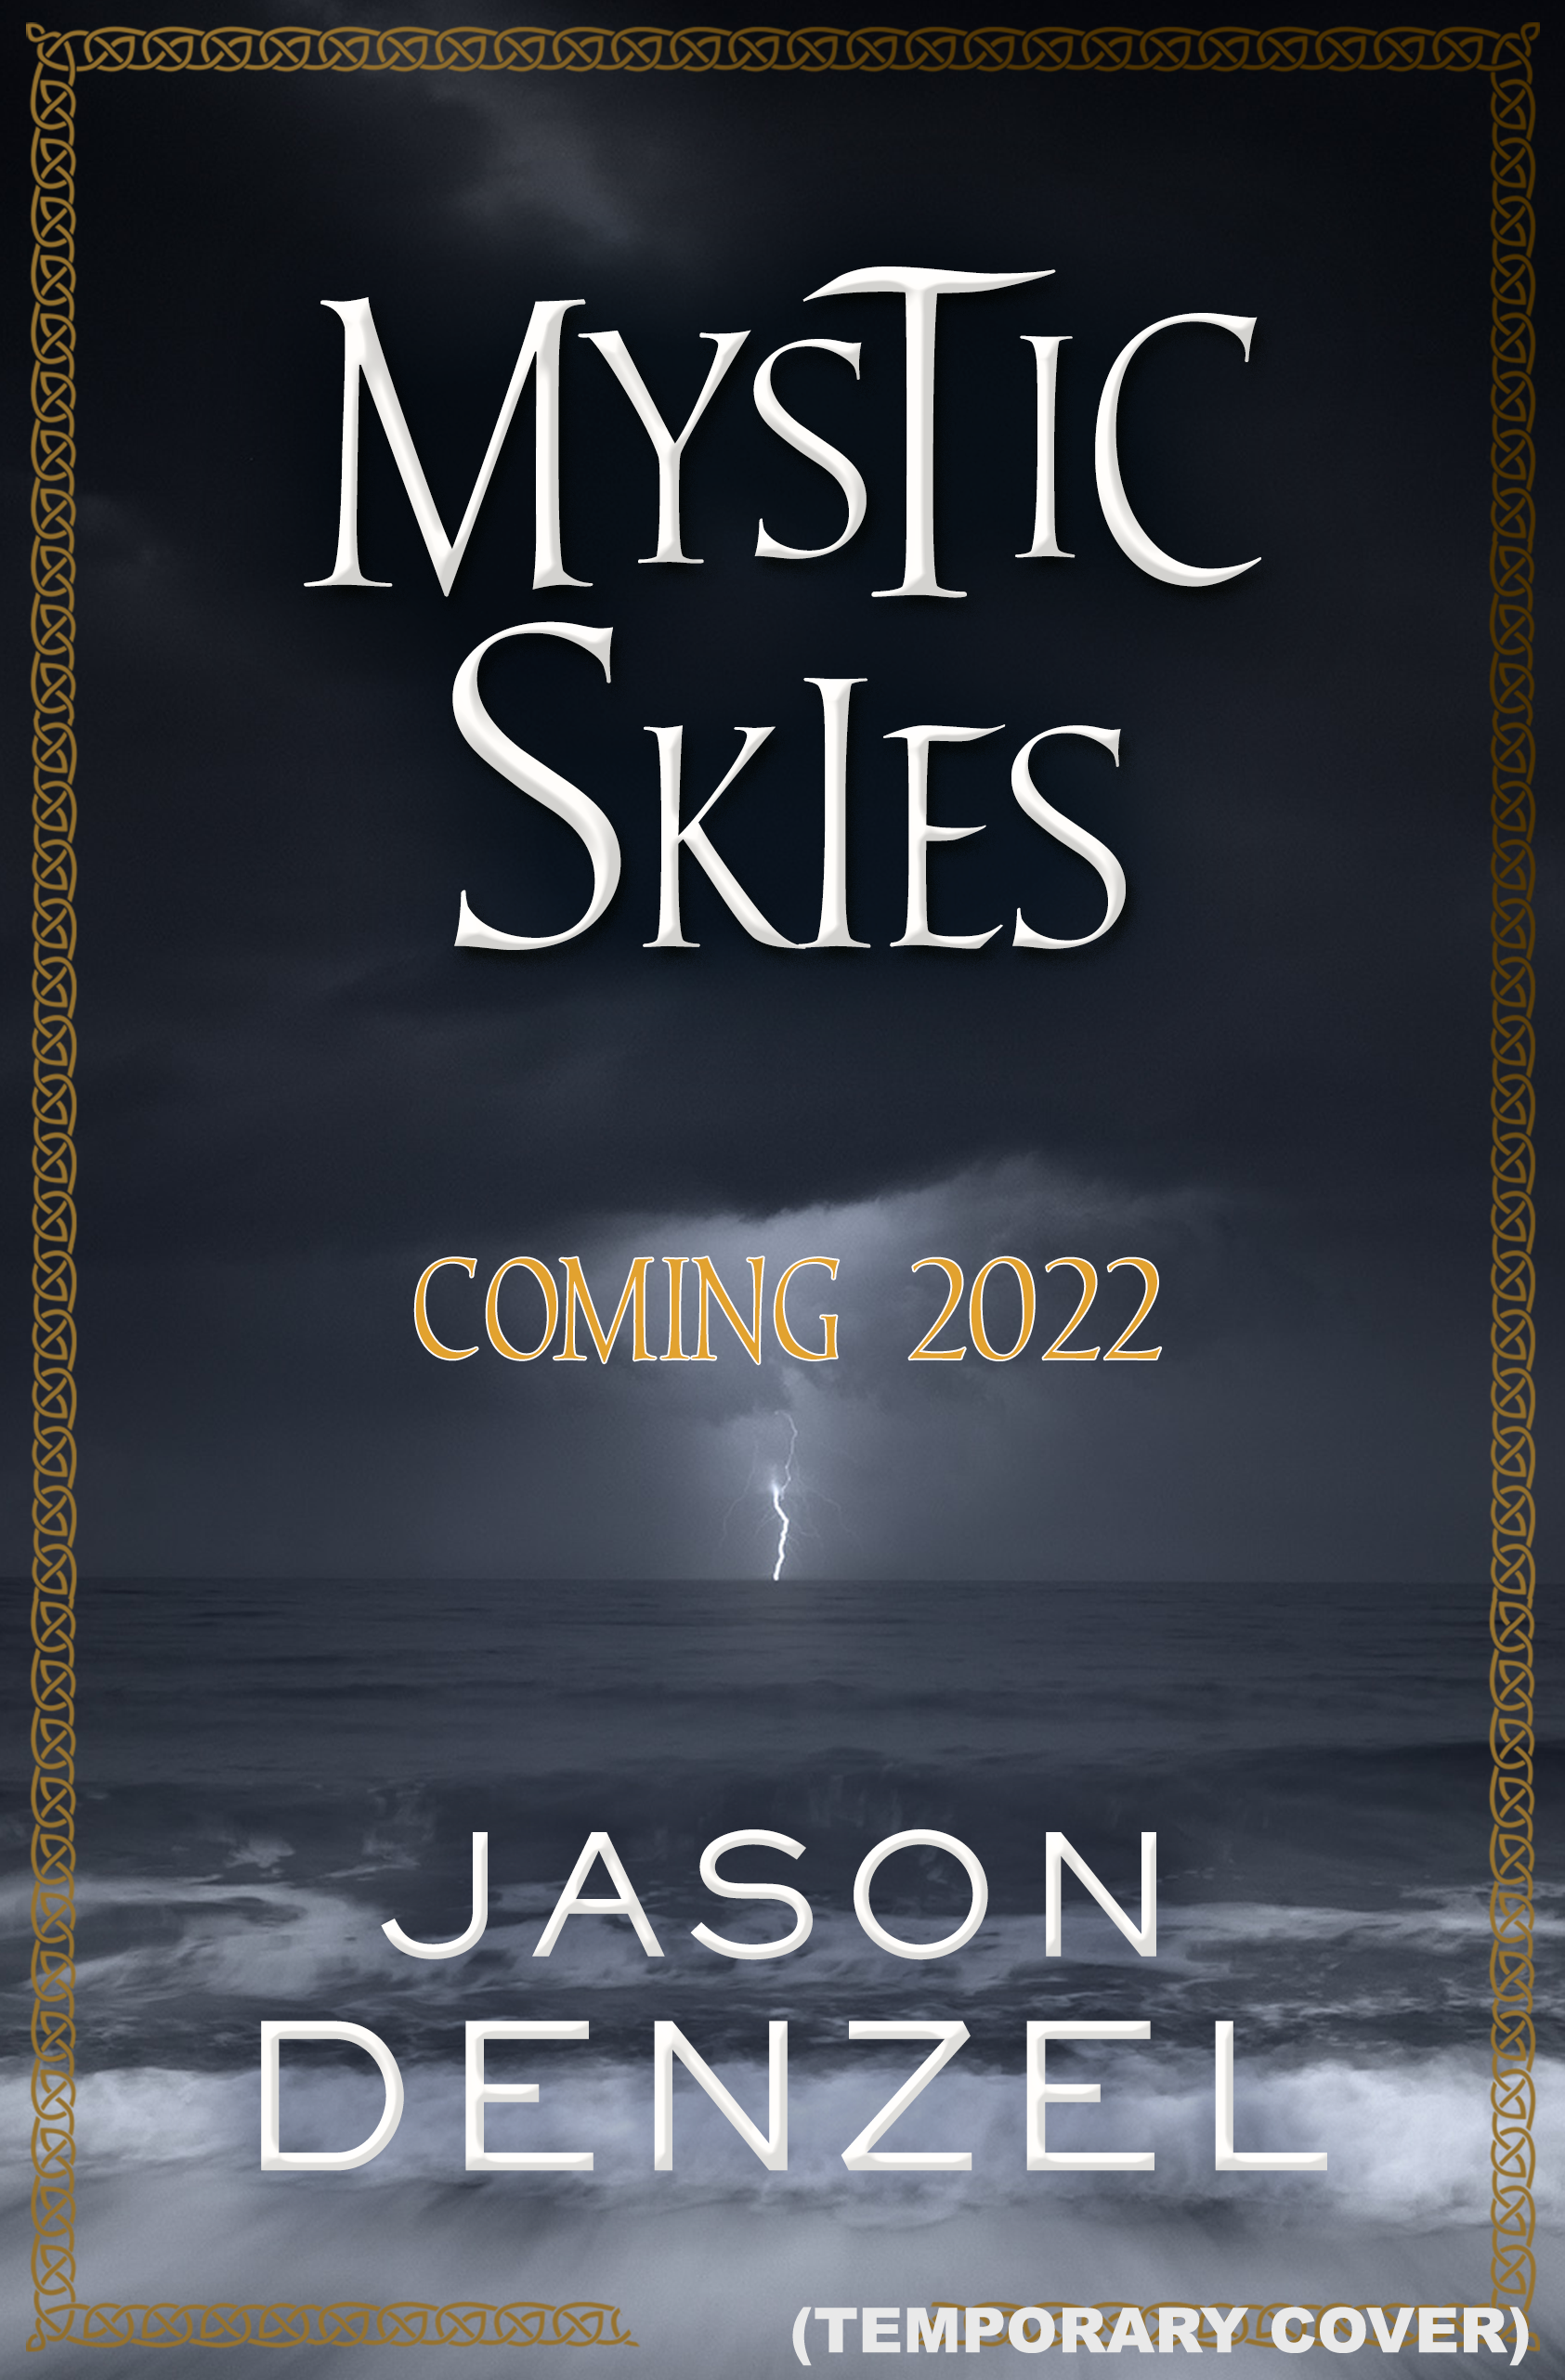 Mystic Skies by Jason Denzel temporary book cover